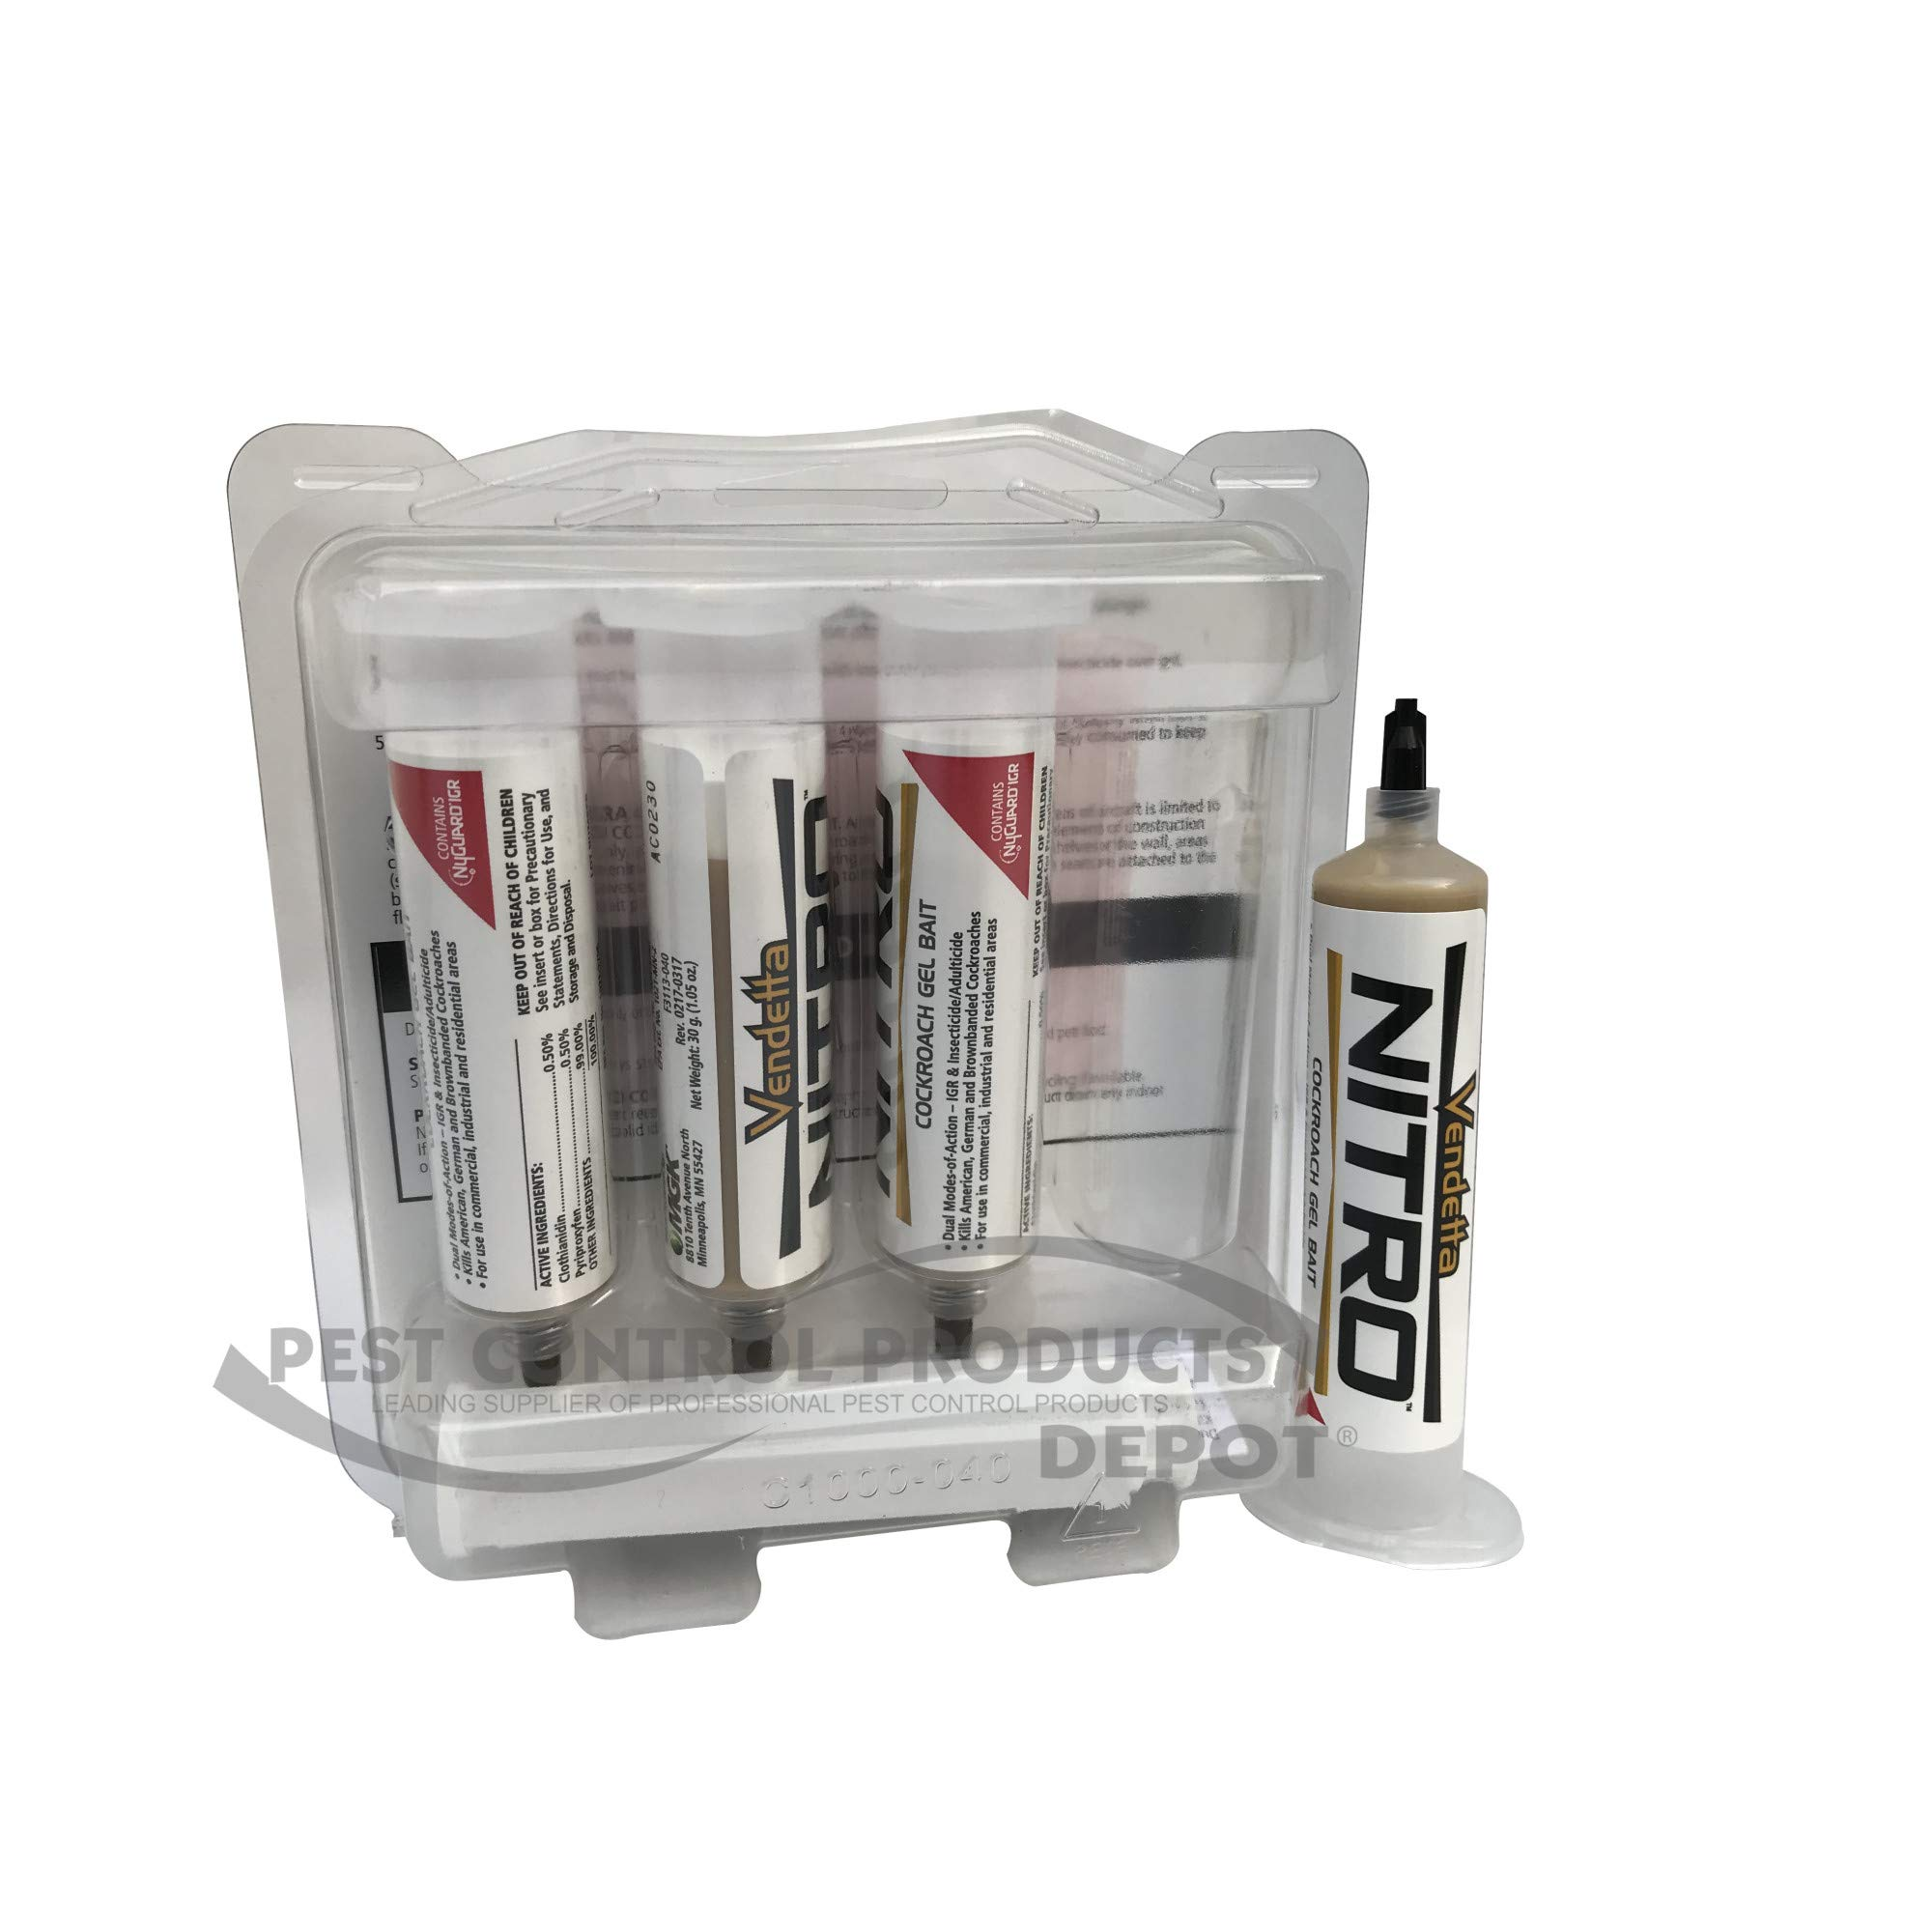 MGK 832180 Vendetta Nitro Cockroach Gel, 4-Pack